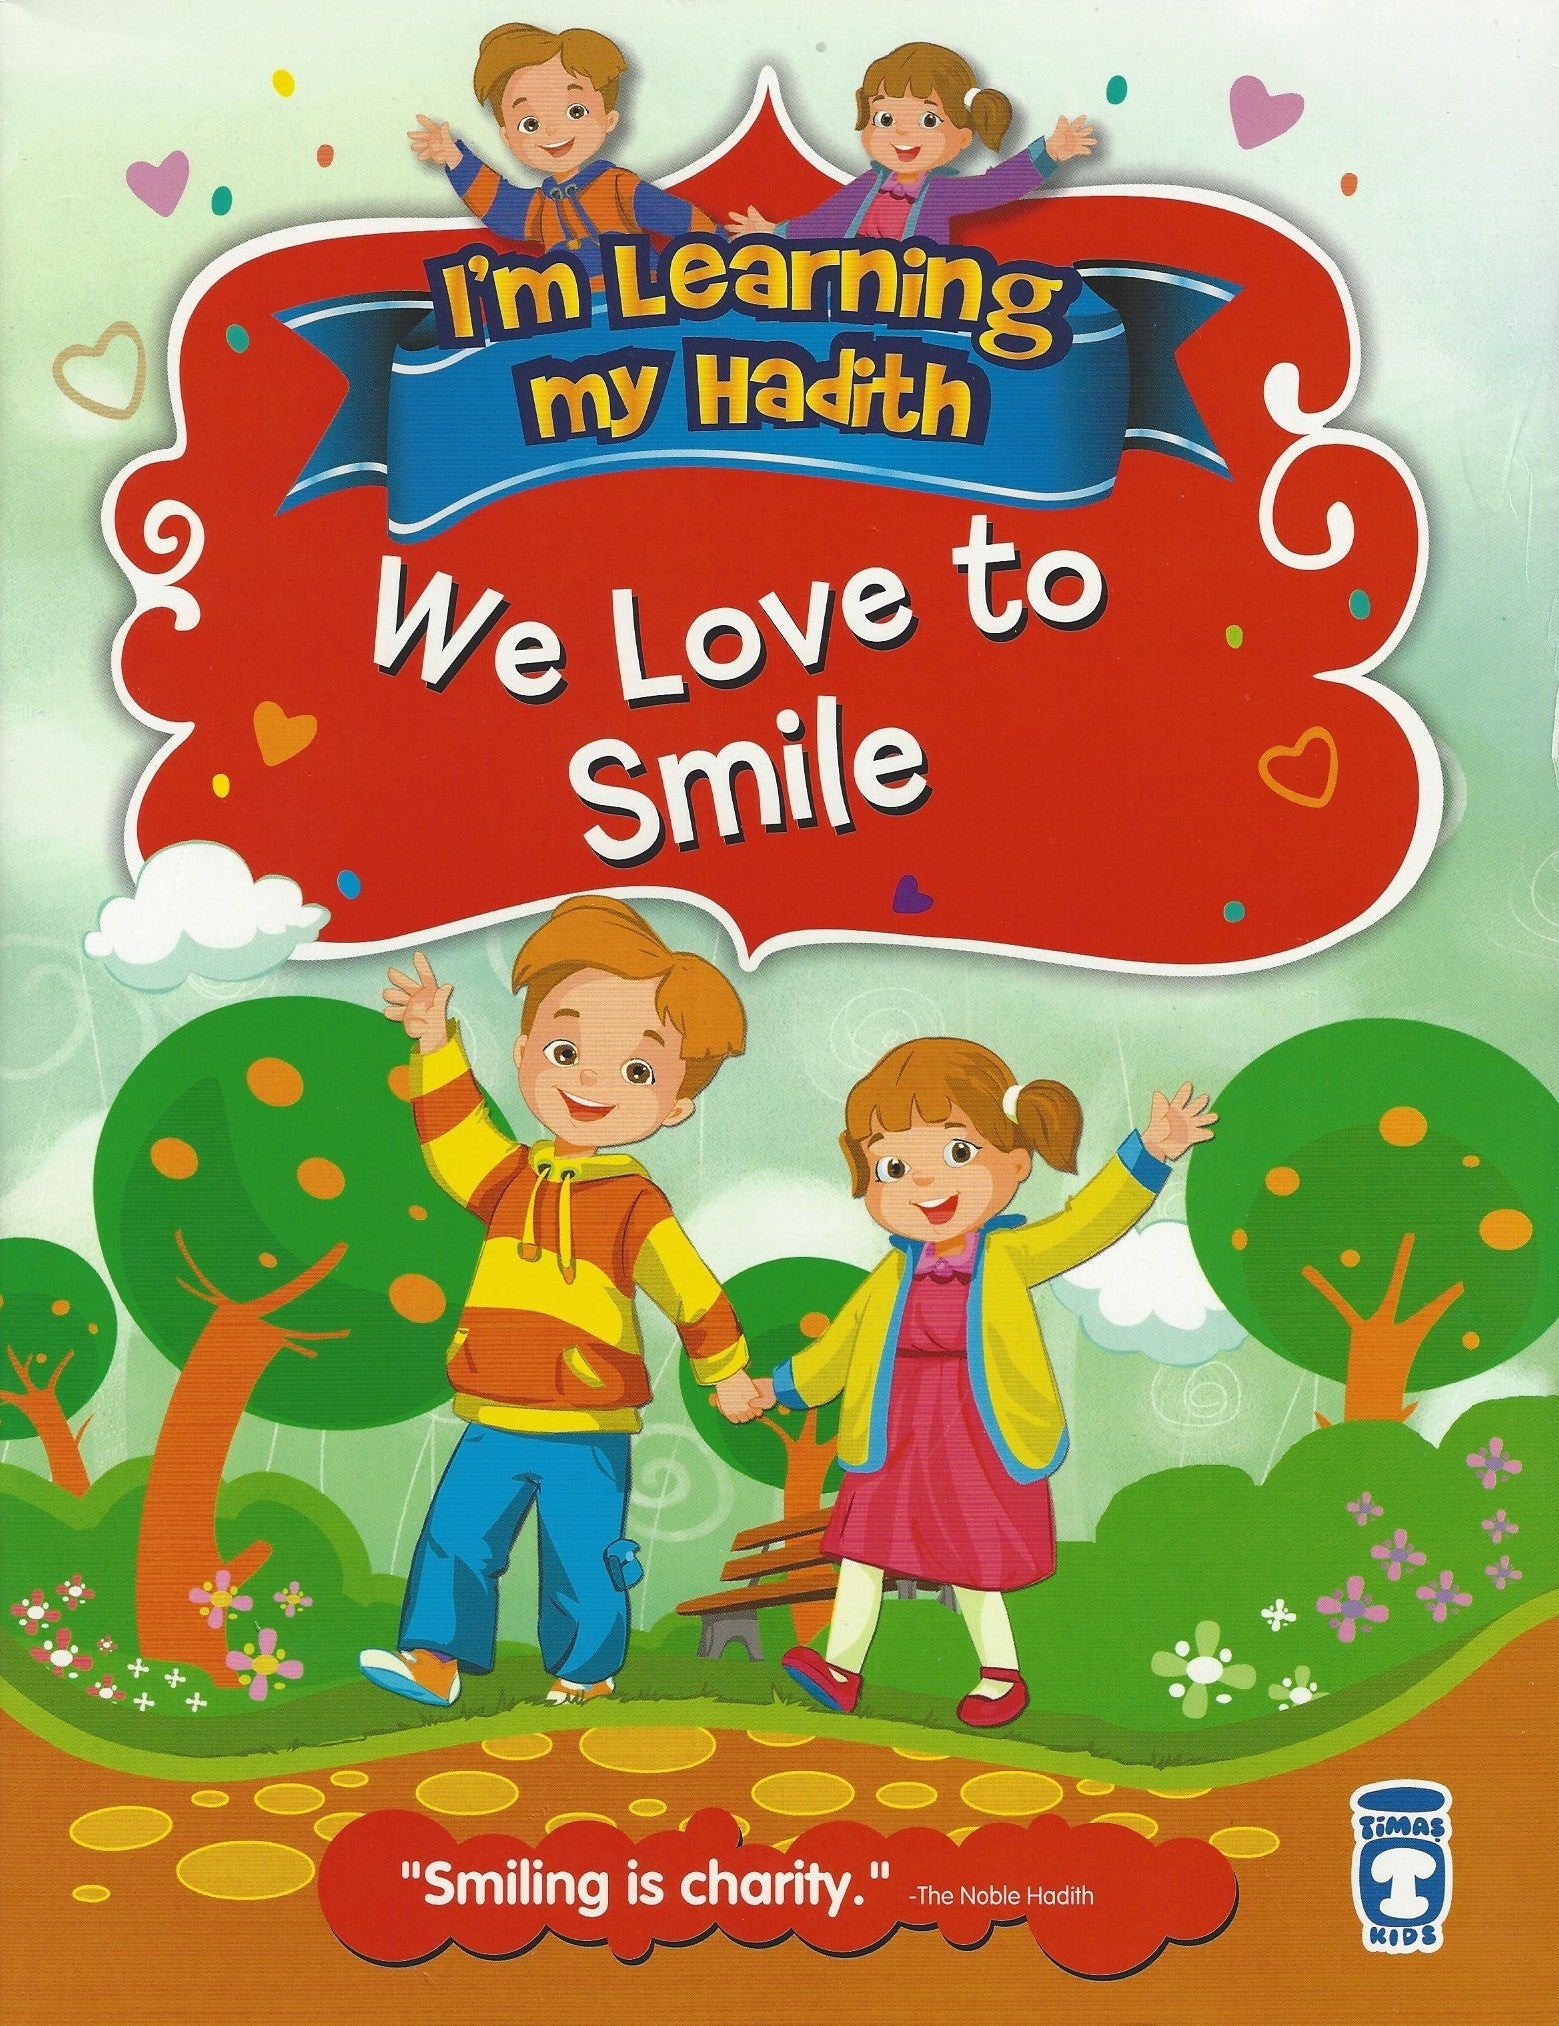 I'm Learning My Hadith (10 volumes) We Love to Smile, Book - Daybreak International Bookstore, Daybreak Press Global Bookshop  - 1